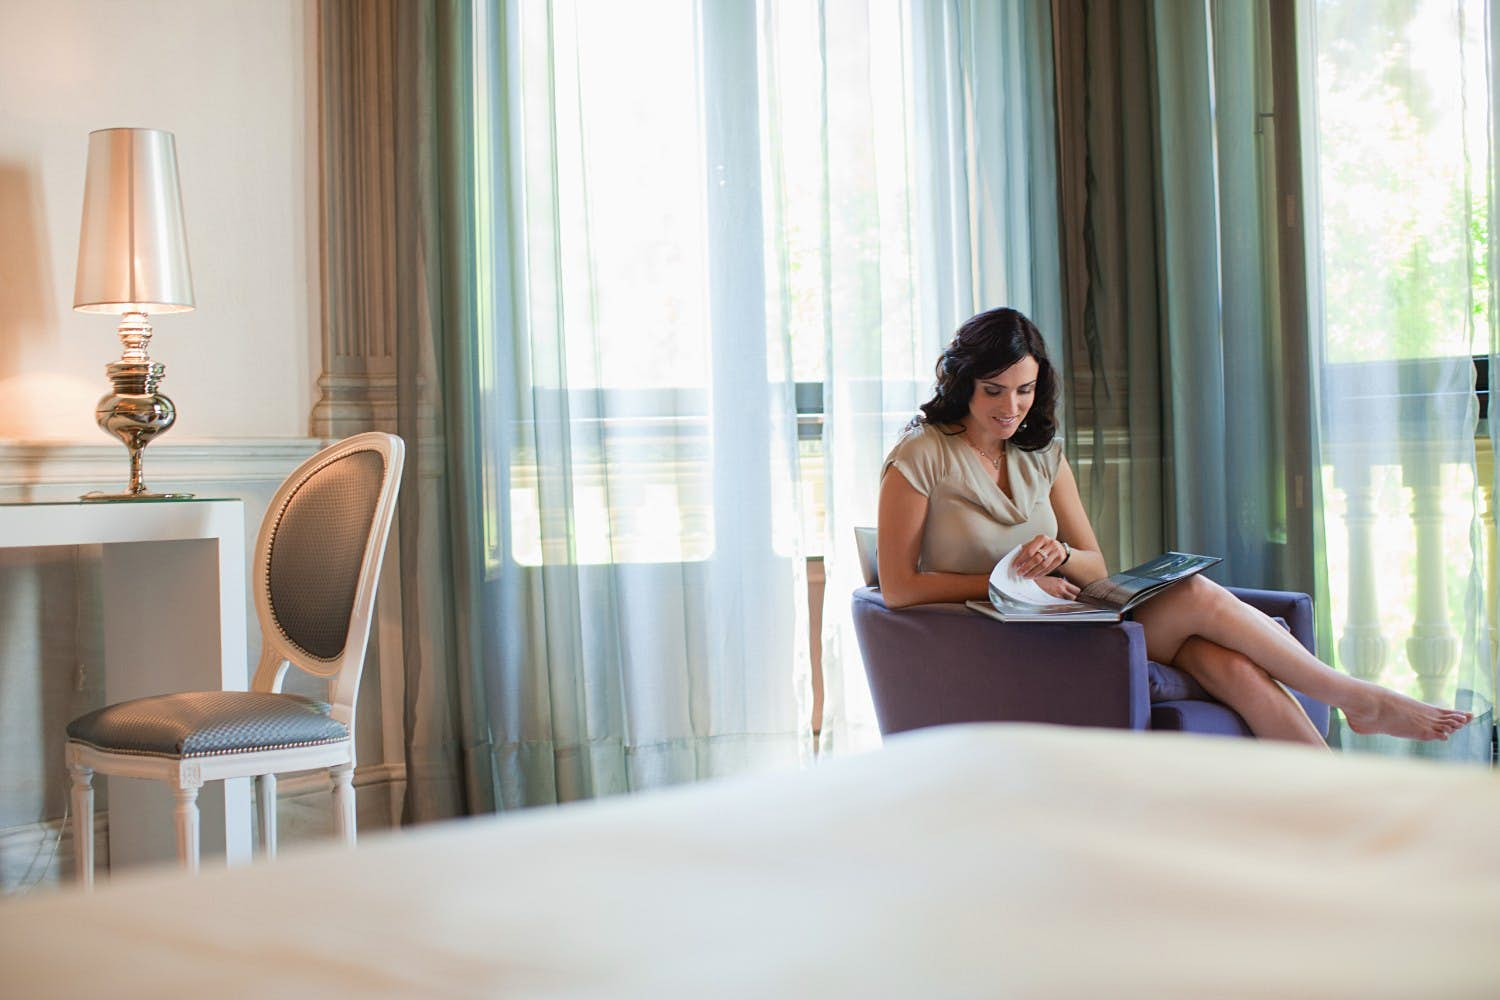 A woman reading a magazine in a hotel room